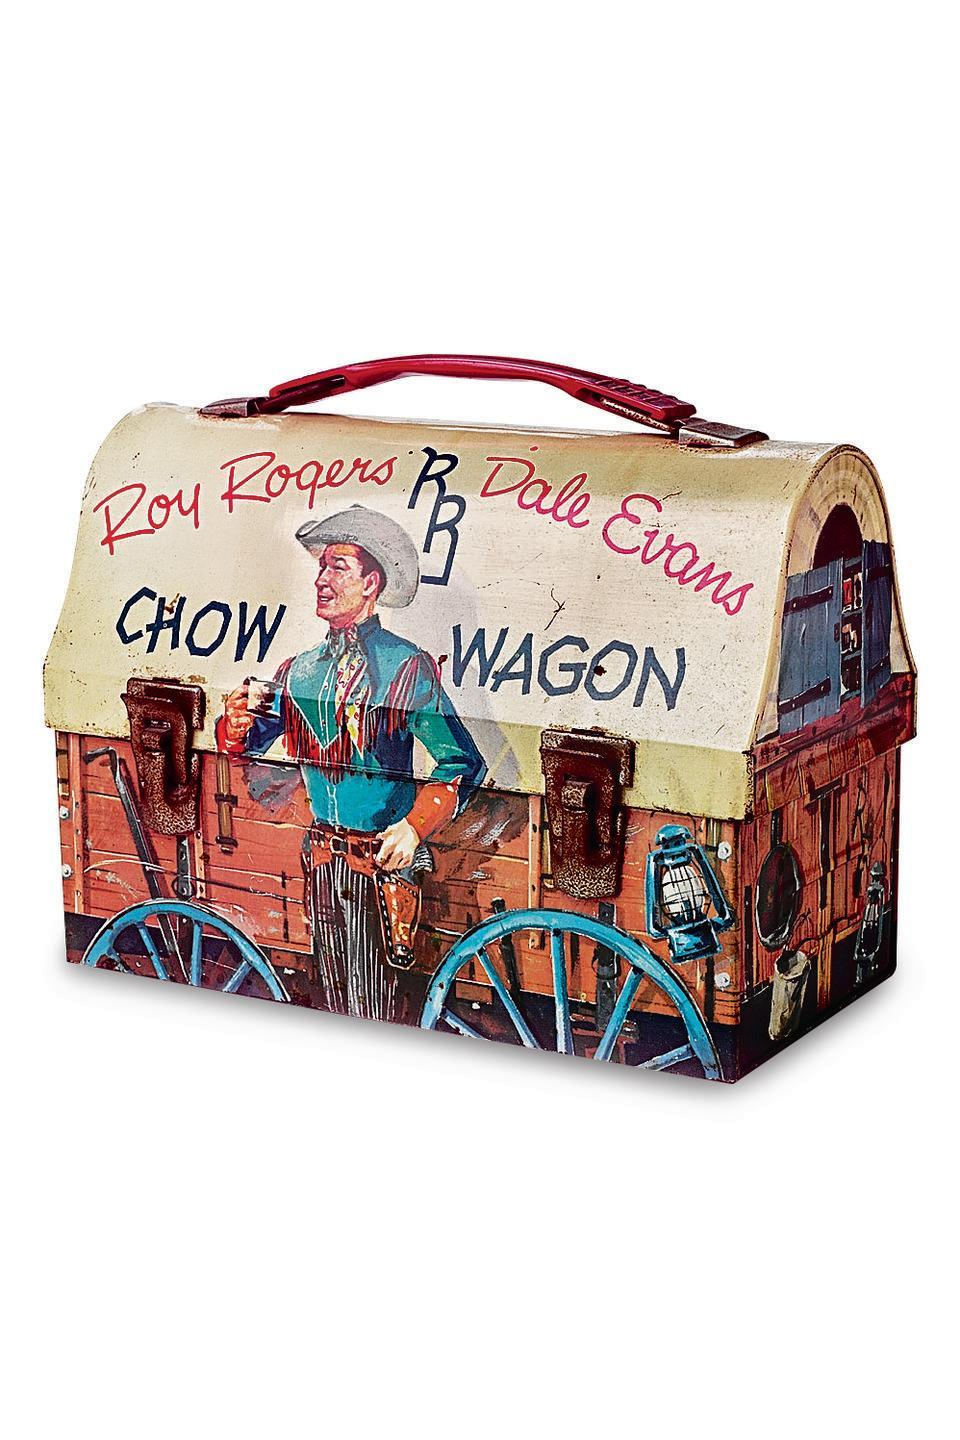 <p><strong>What it was worth (2004): </strong>$300</p><p><strong>What it's worth now:</strong> $65</p><p>This cowboy-covered lunch box is now worth less than a fourth of its original appraised value, but we still love the Western theme.</p>